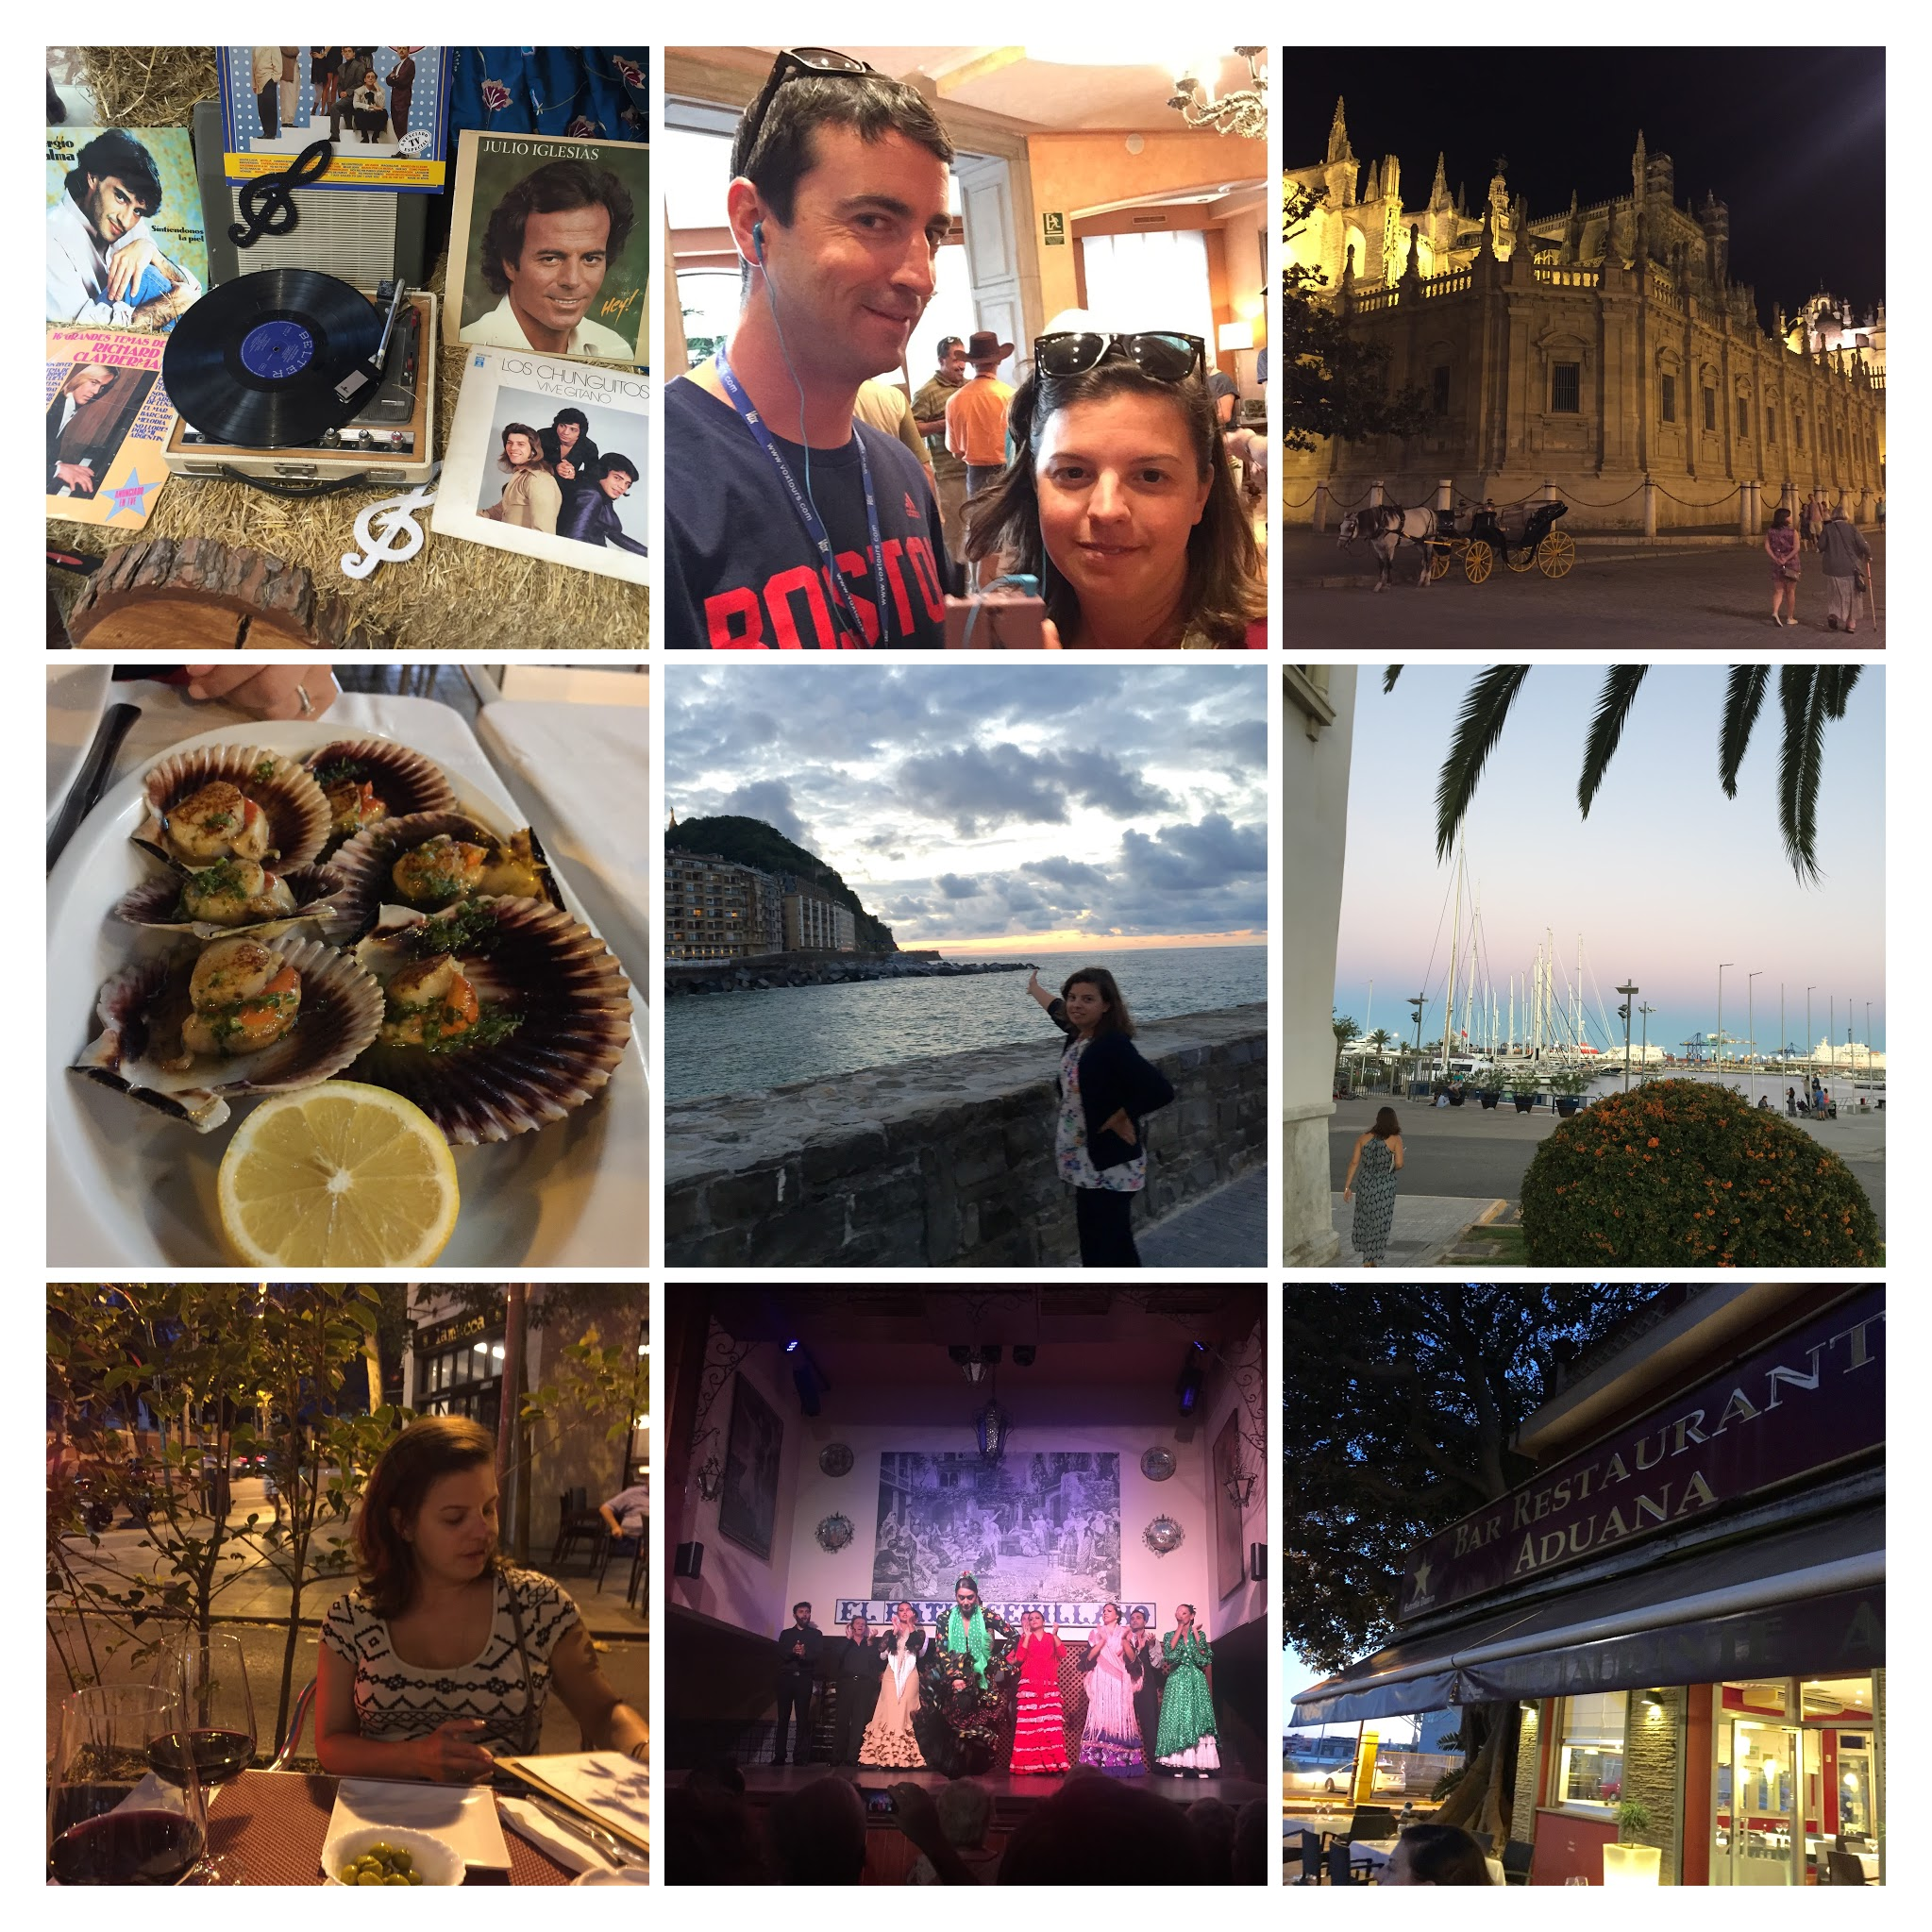 Following Amanda around the country of Spain.